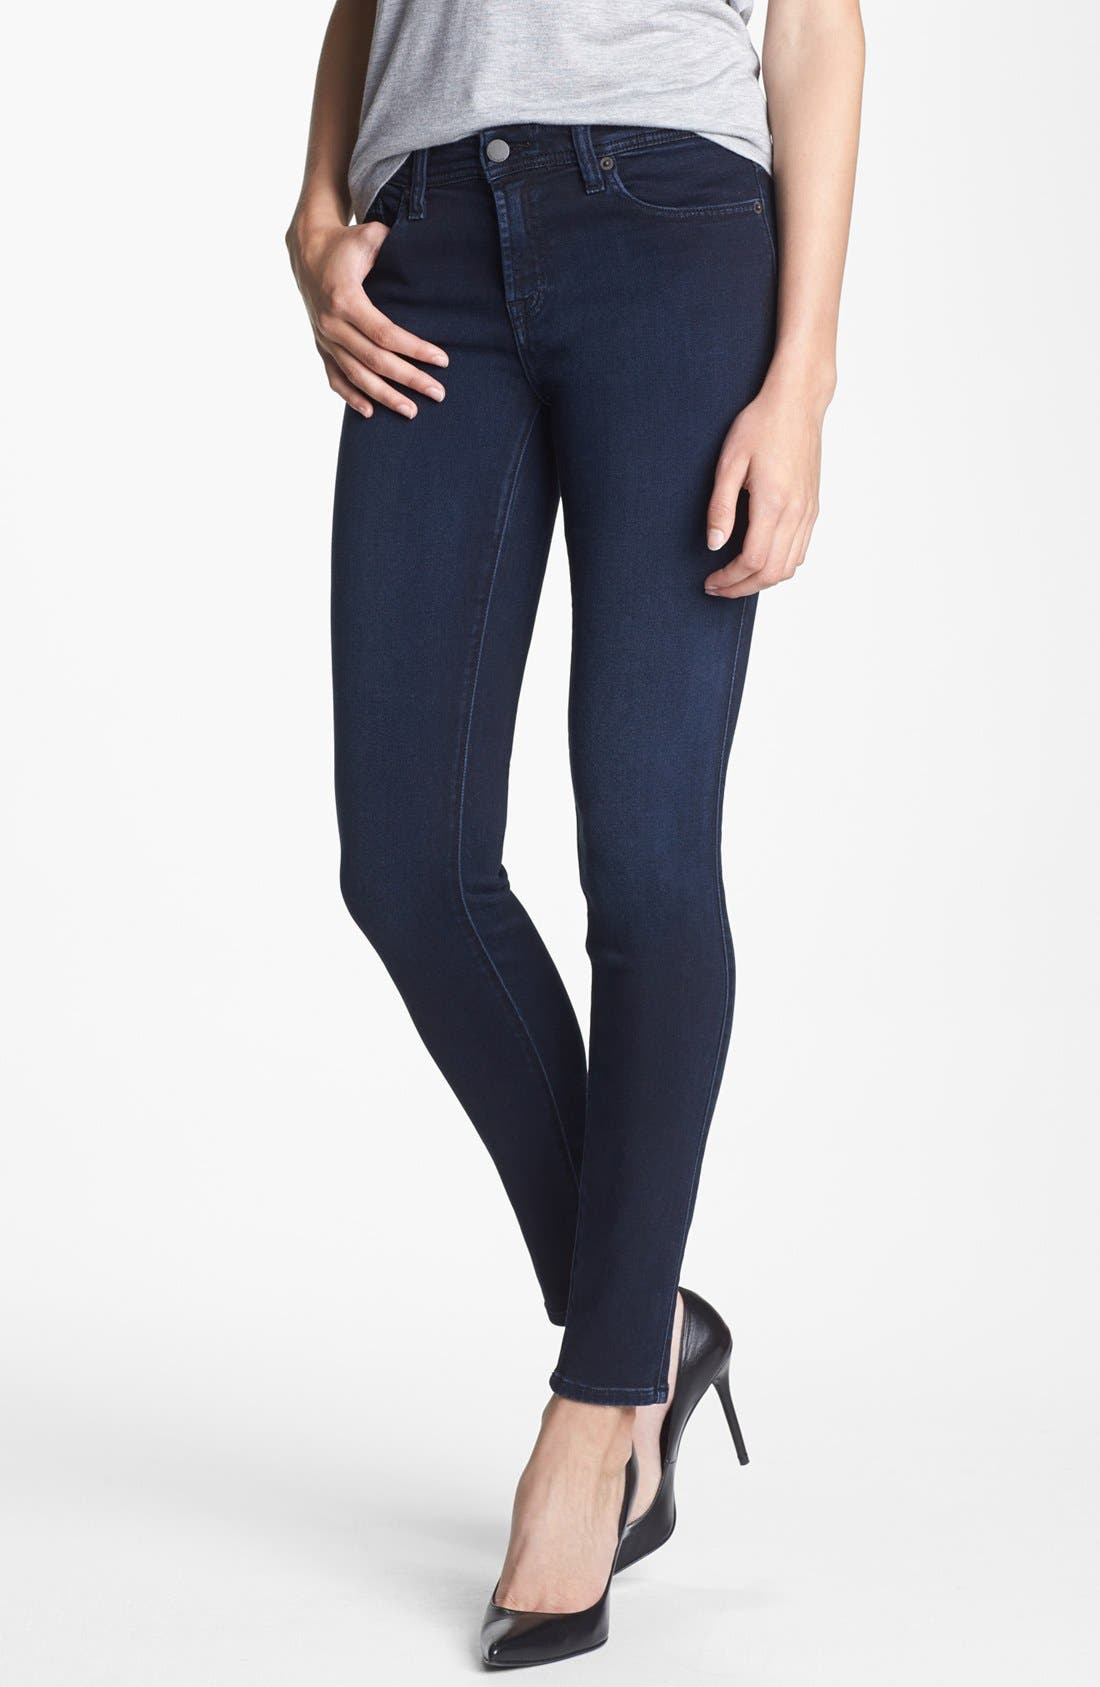 Main Image - Genetic 'The Stem' Mid Rise Skinny Jeans (Pop Blue)